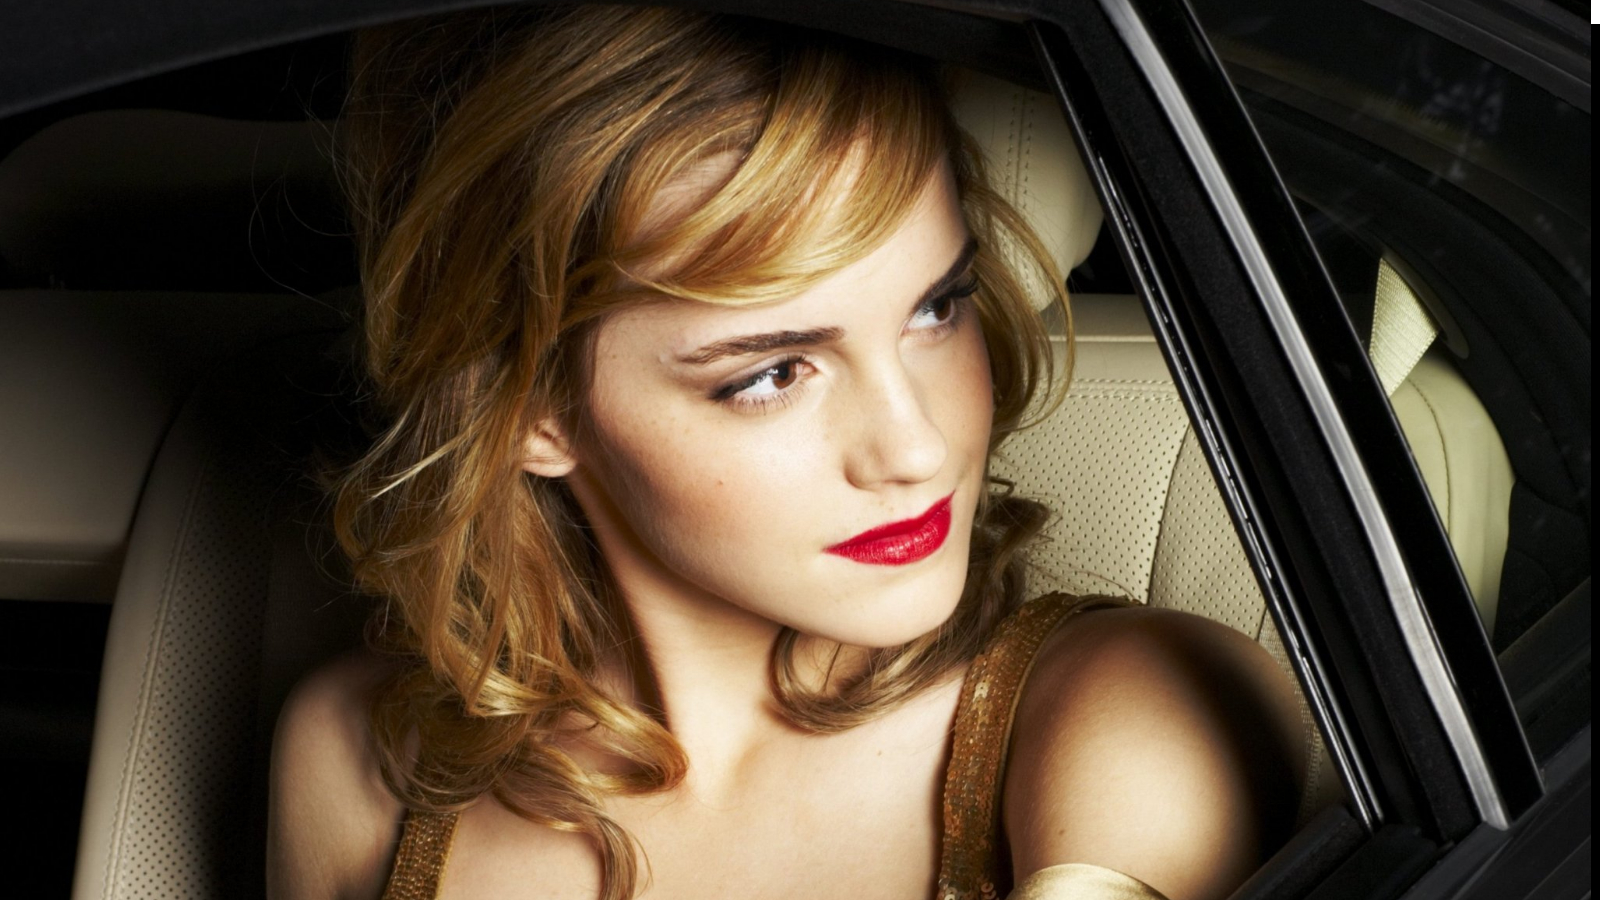 Women Emma Watson girl HD Wallpaper